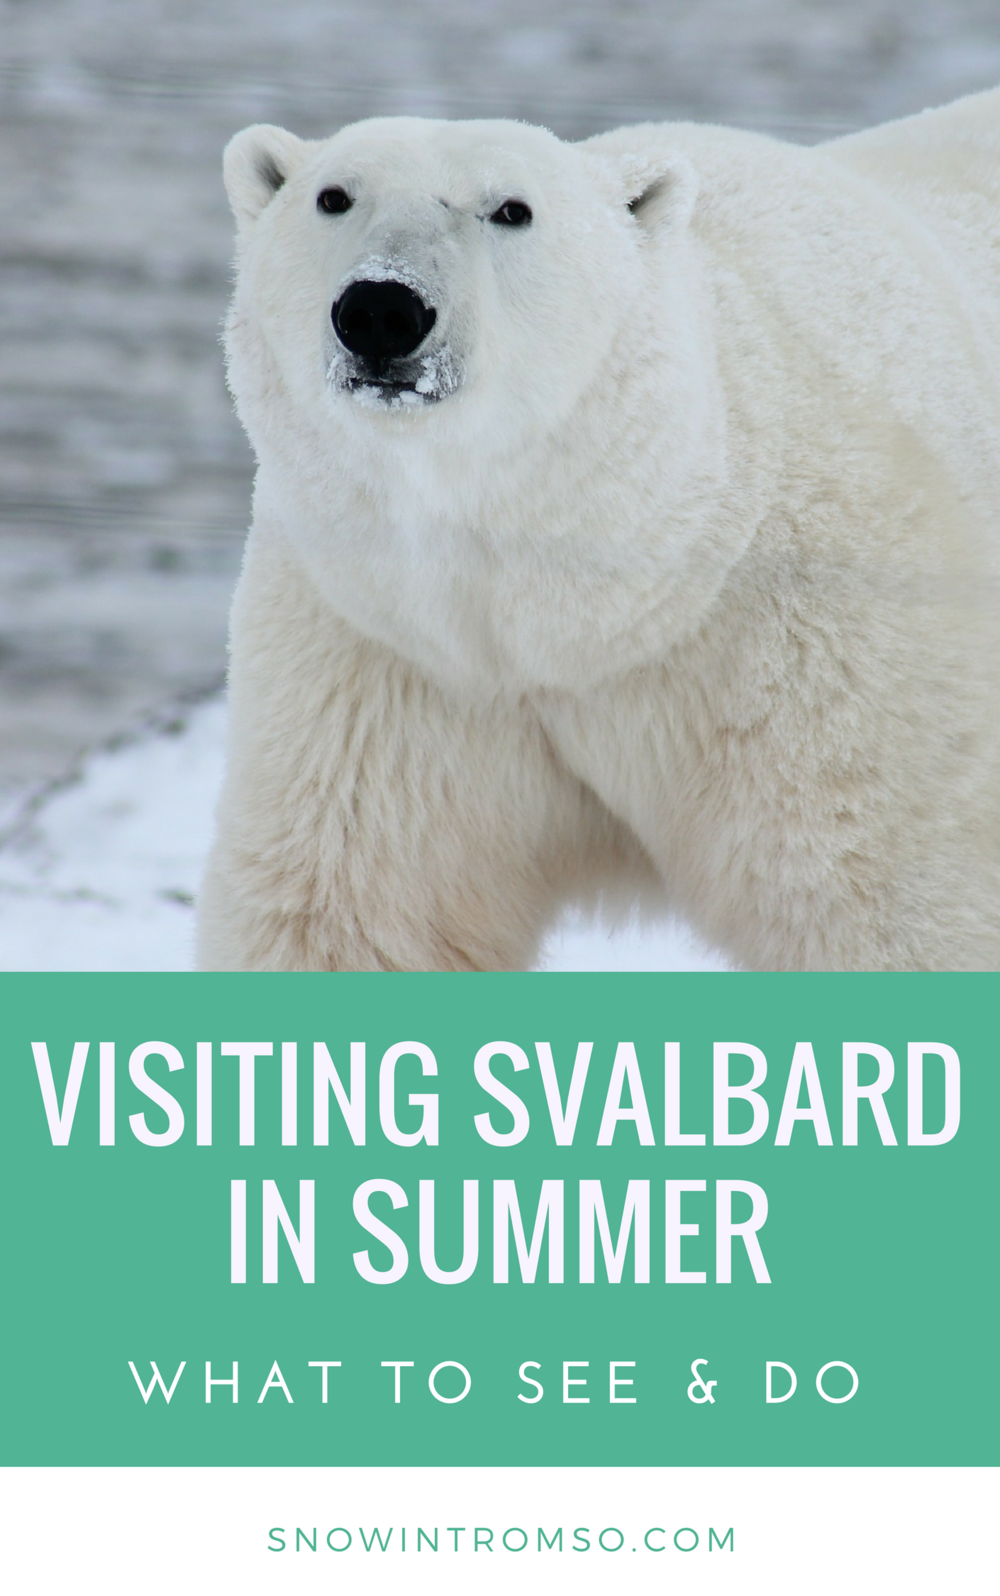 Considering a visit to Svalbard in summer? Click through to see what there's to see and do in the High Arctic at that time of year!